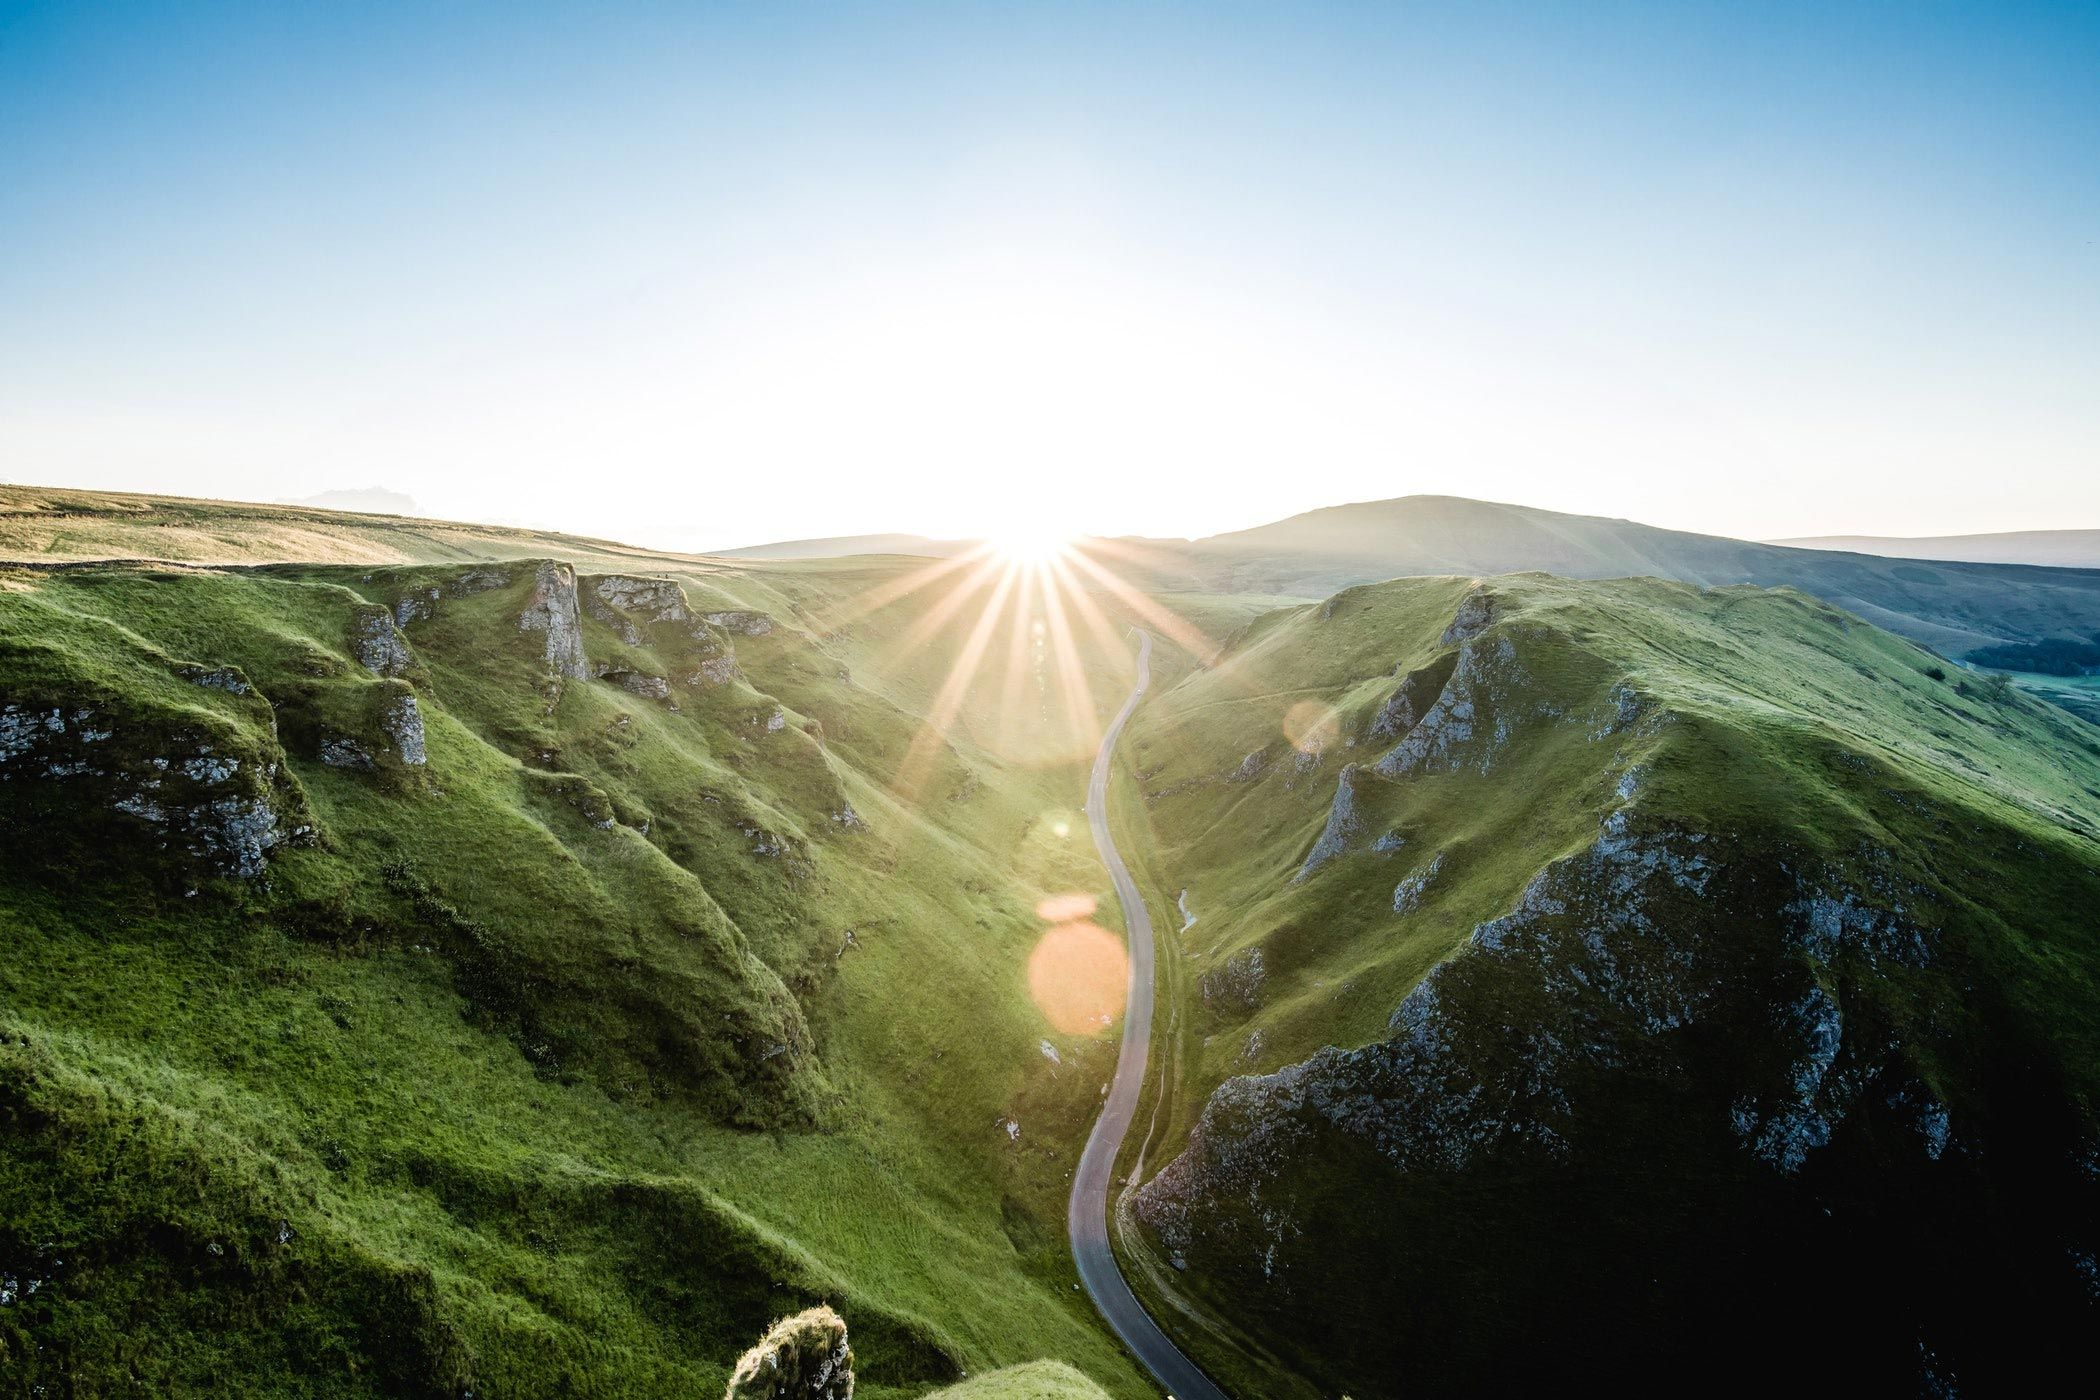 aerial landscape shot with road in the middle of large green hills leading towards sun rising over horizon